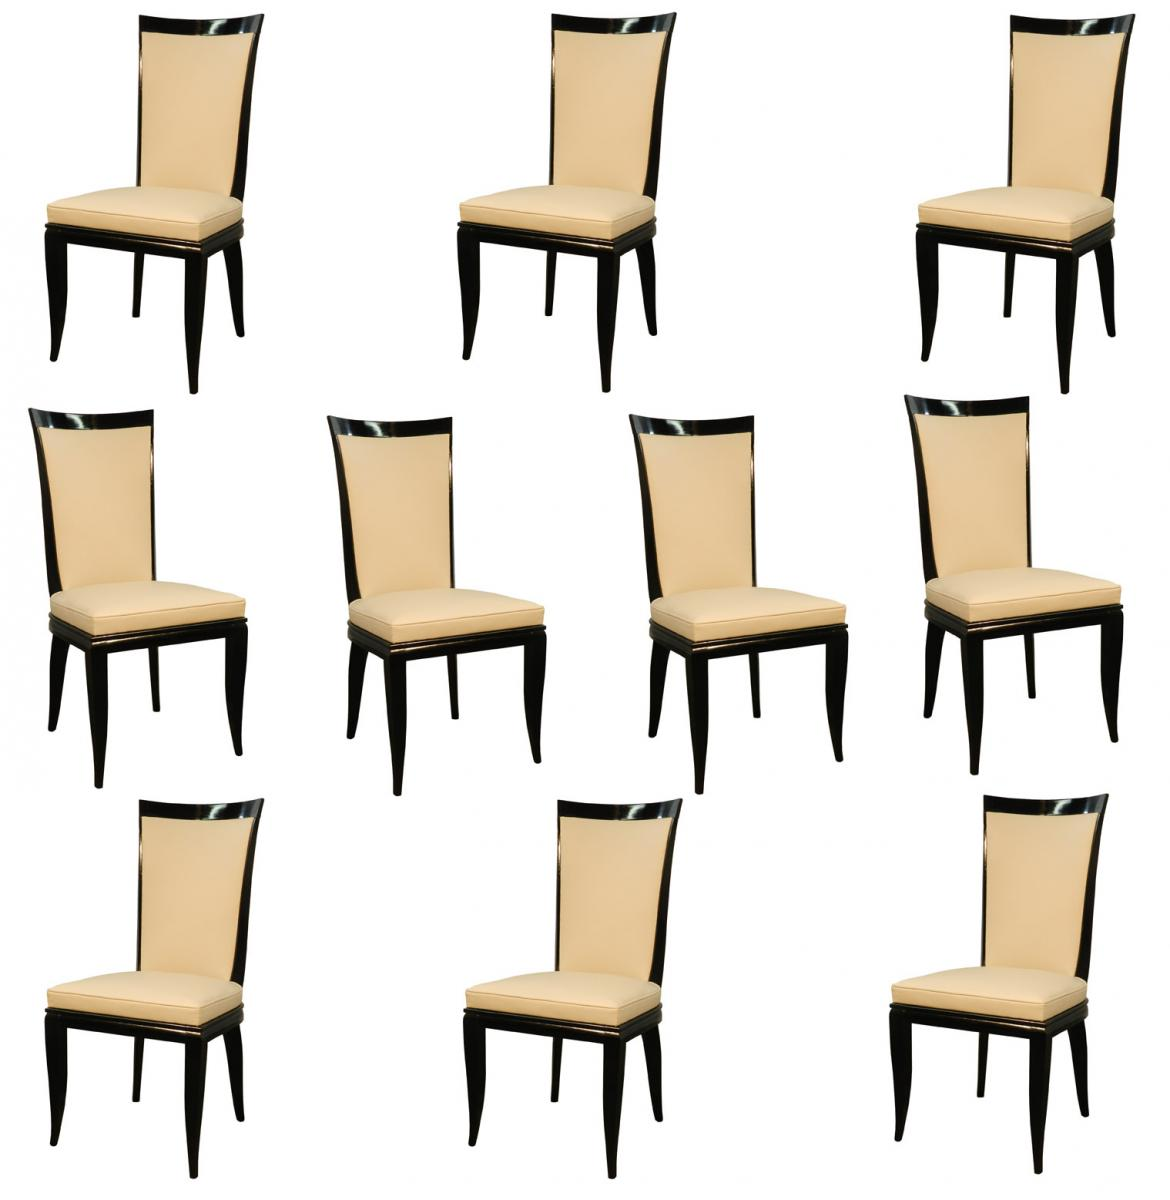 Artistic Dining Chairs Ten French Art Deco Leather And Lacquered Wood Dining